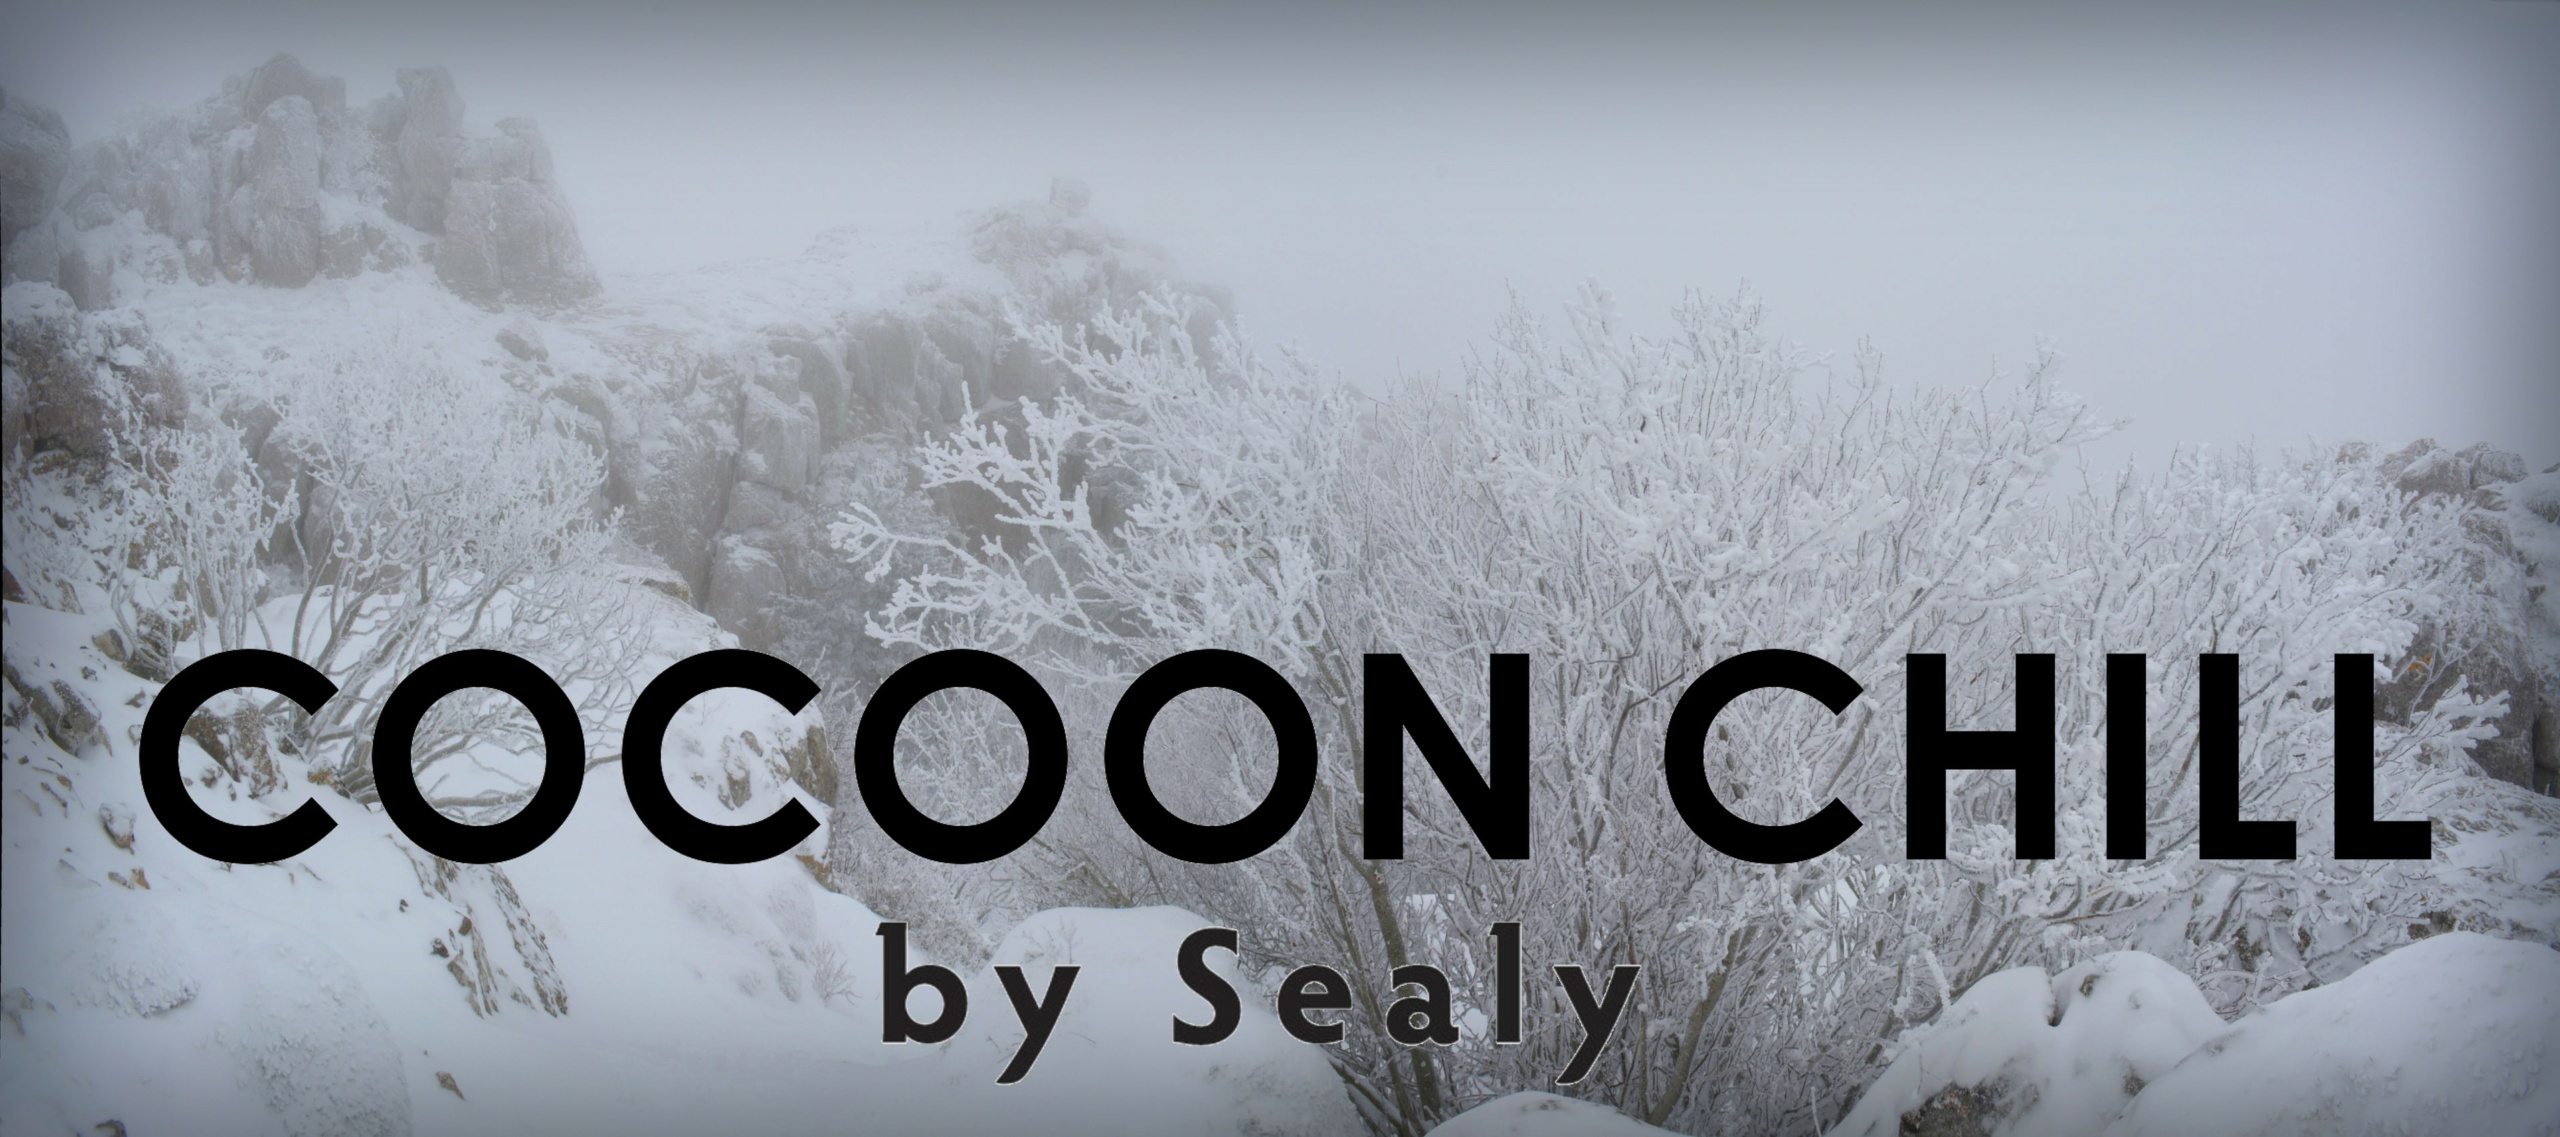 cocoon chill by sealy